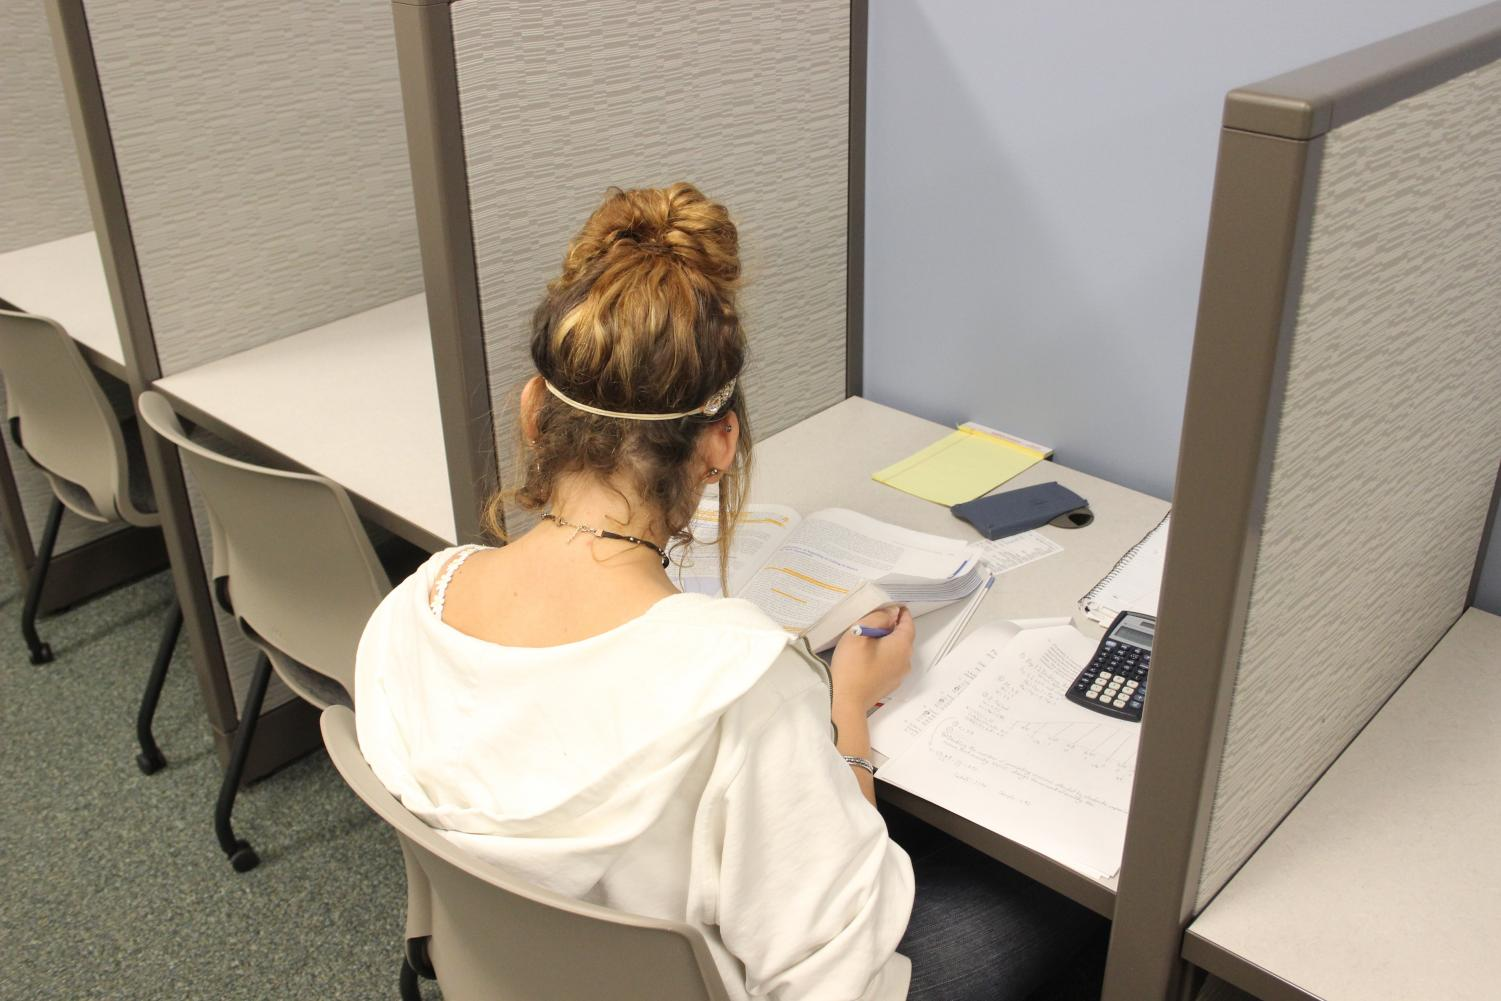 A Disability Support Programs and Services student takes a test in a testing accommodation room in the DSPS office on Oct. 18.